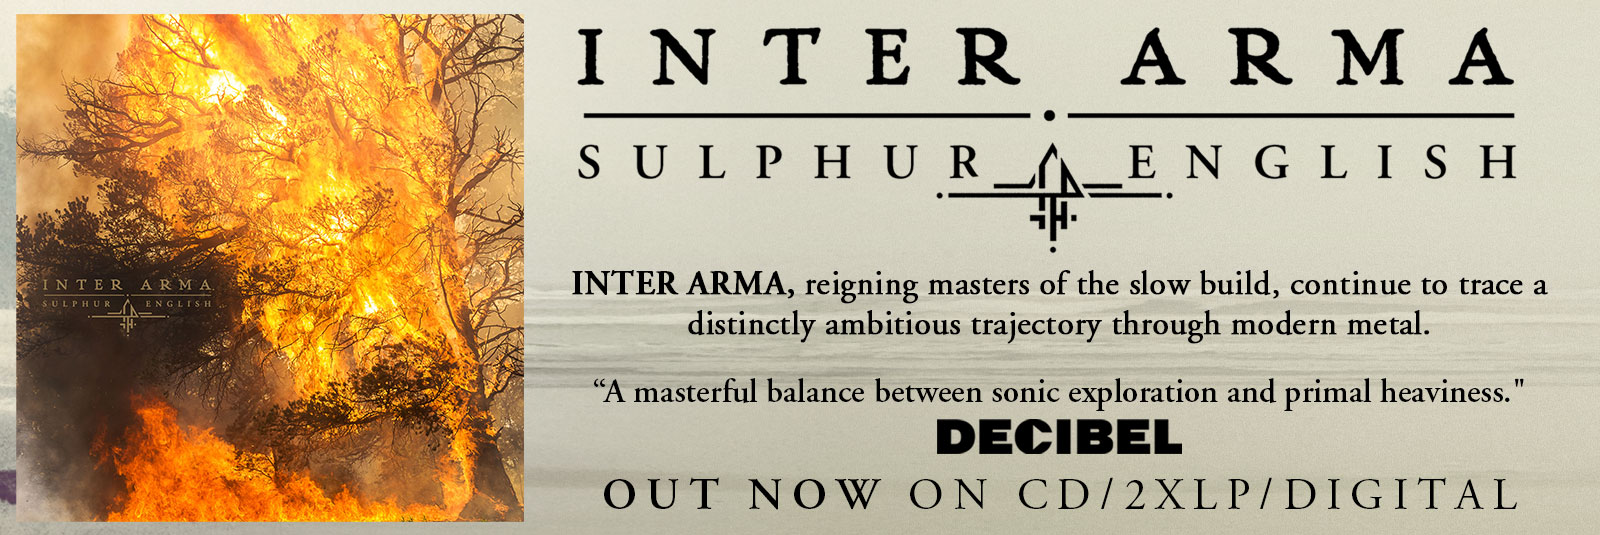 inter-arma-sulphur-english-doom-metal-out-now